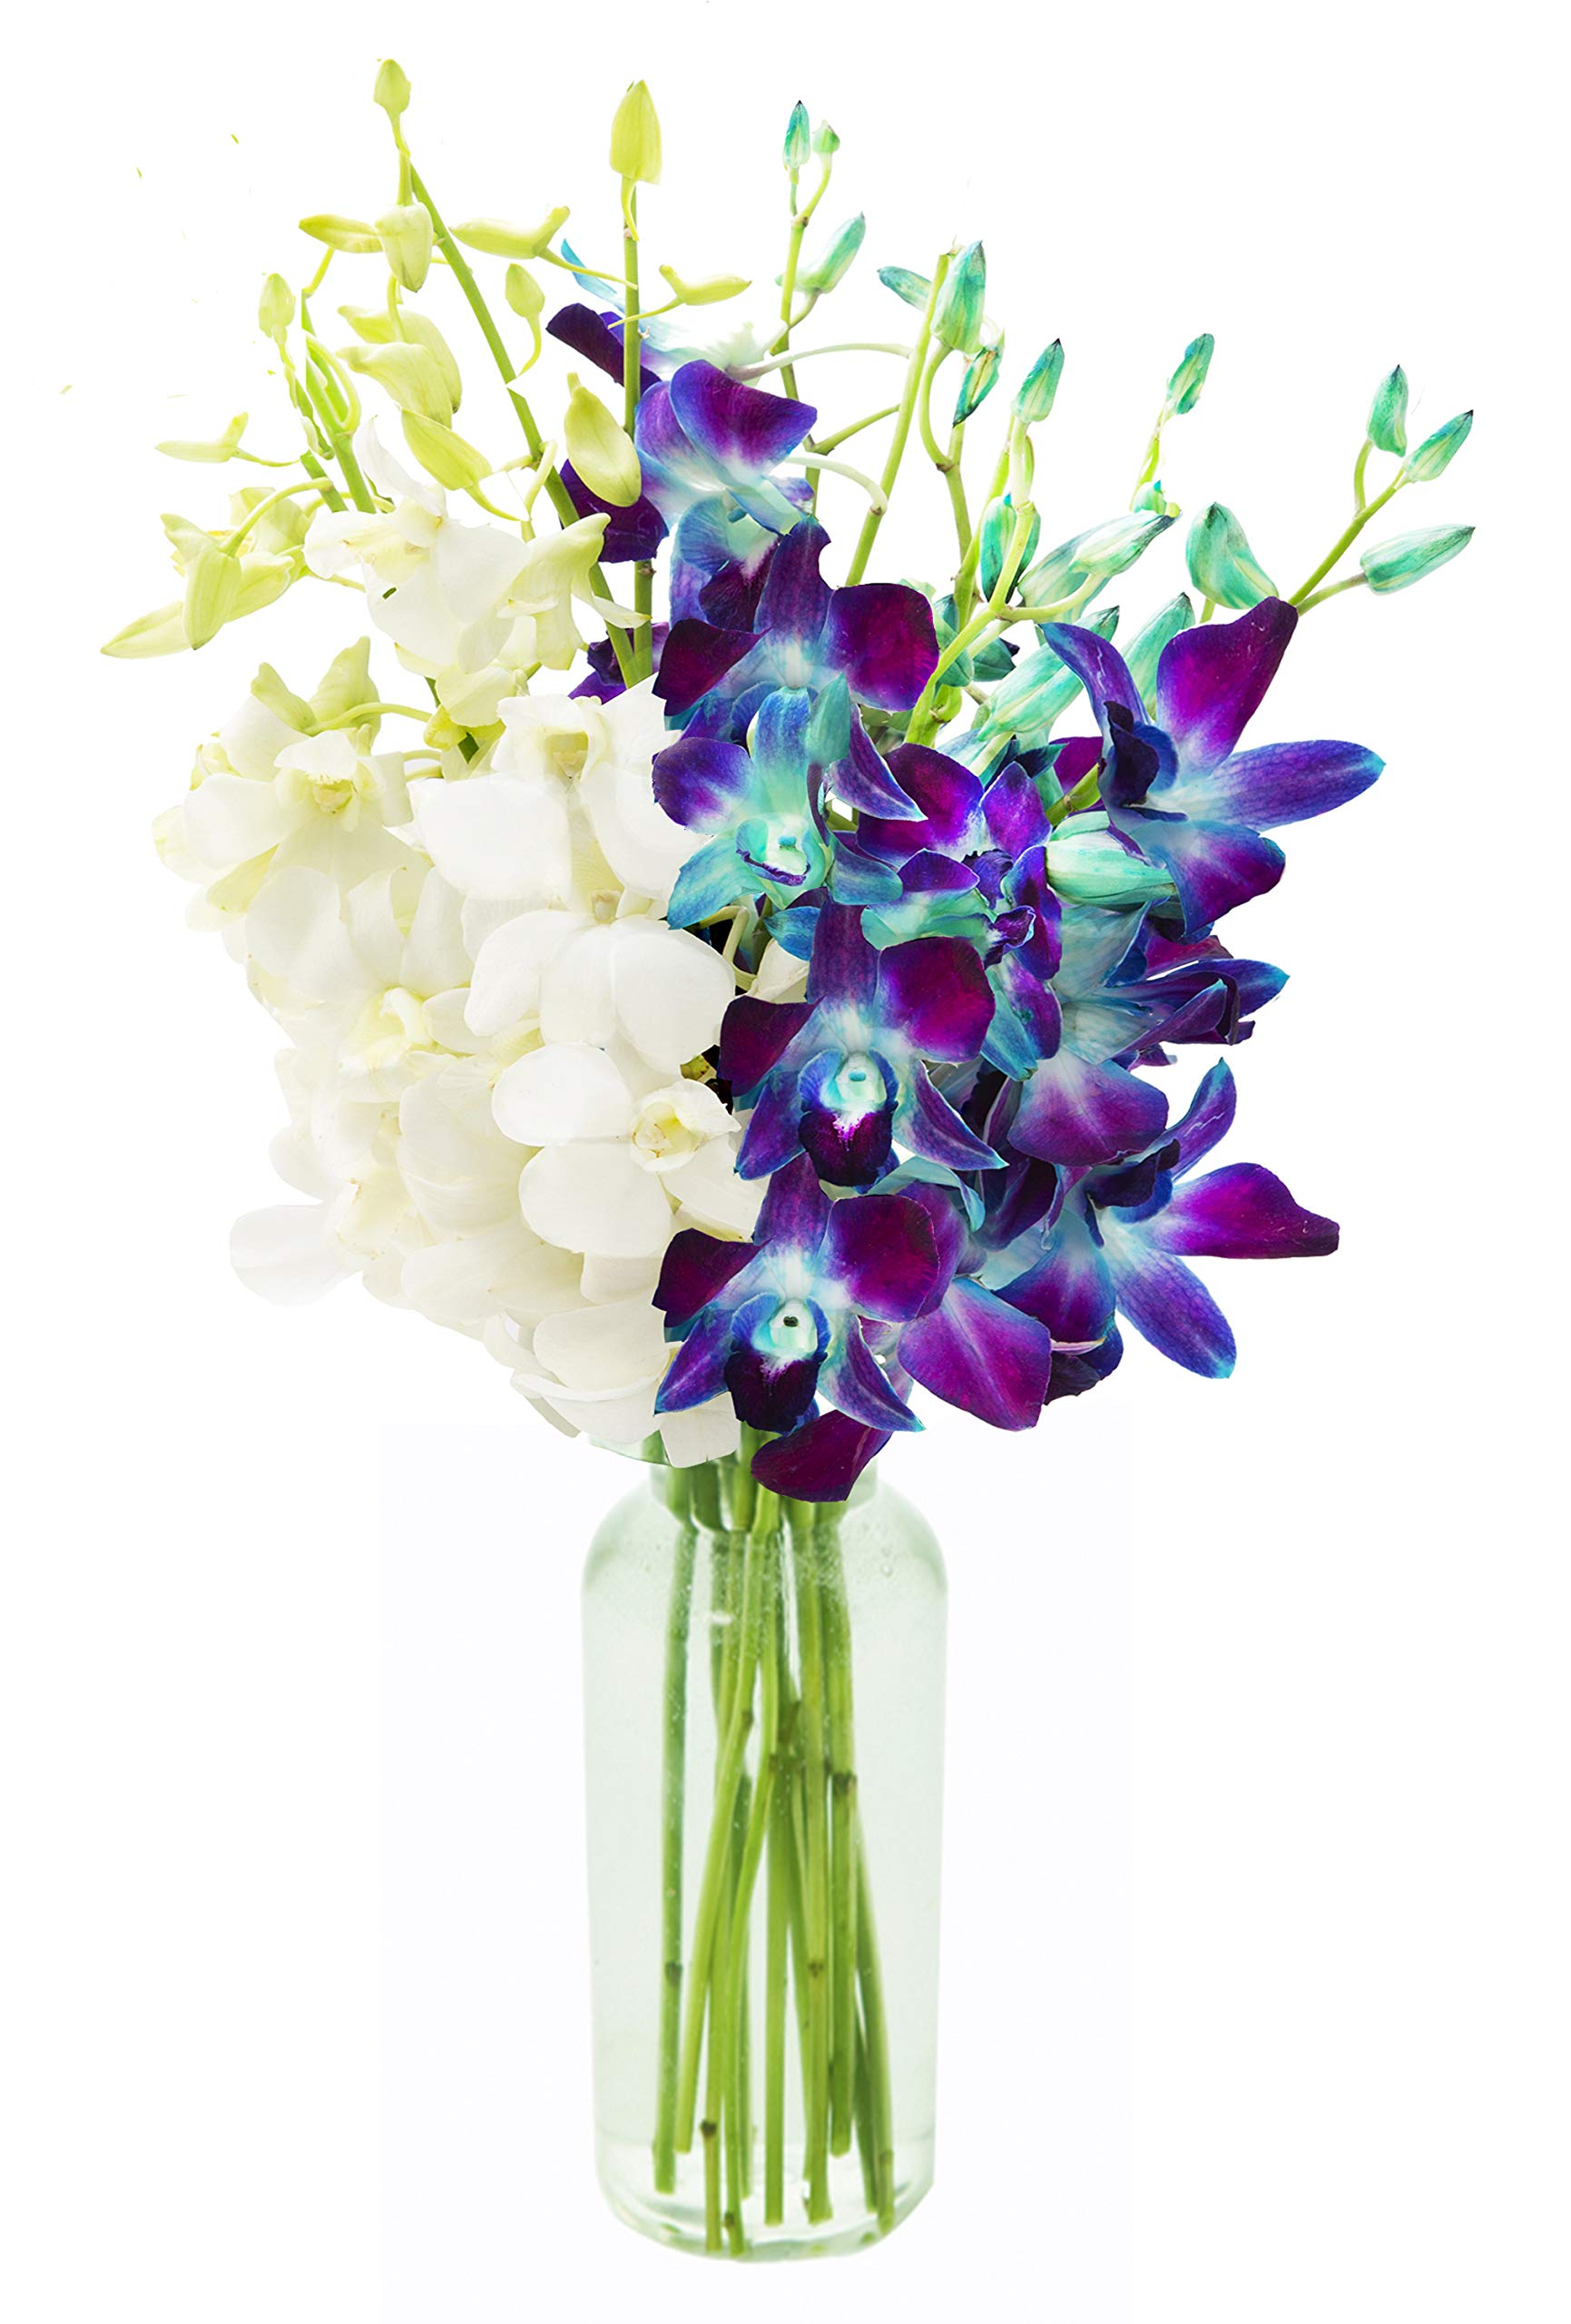 KaBloom Starry Night in the Tropics Bouquet of Blue and White Orchids from Thailand with Vase